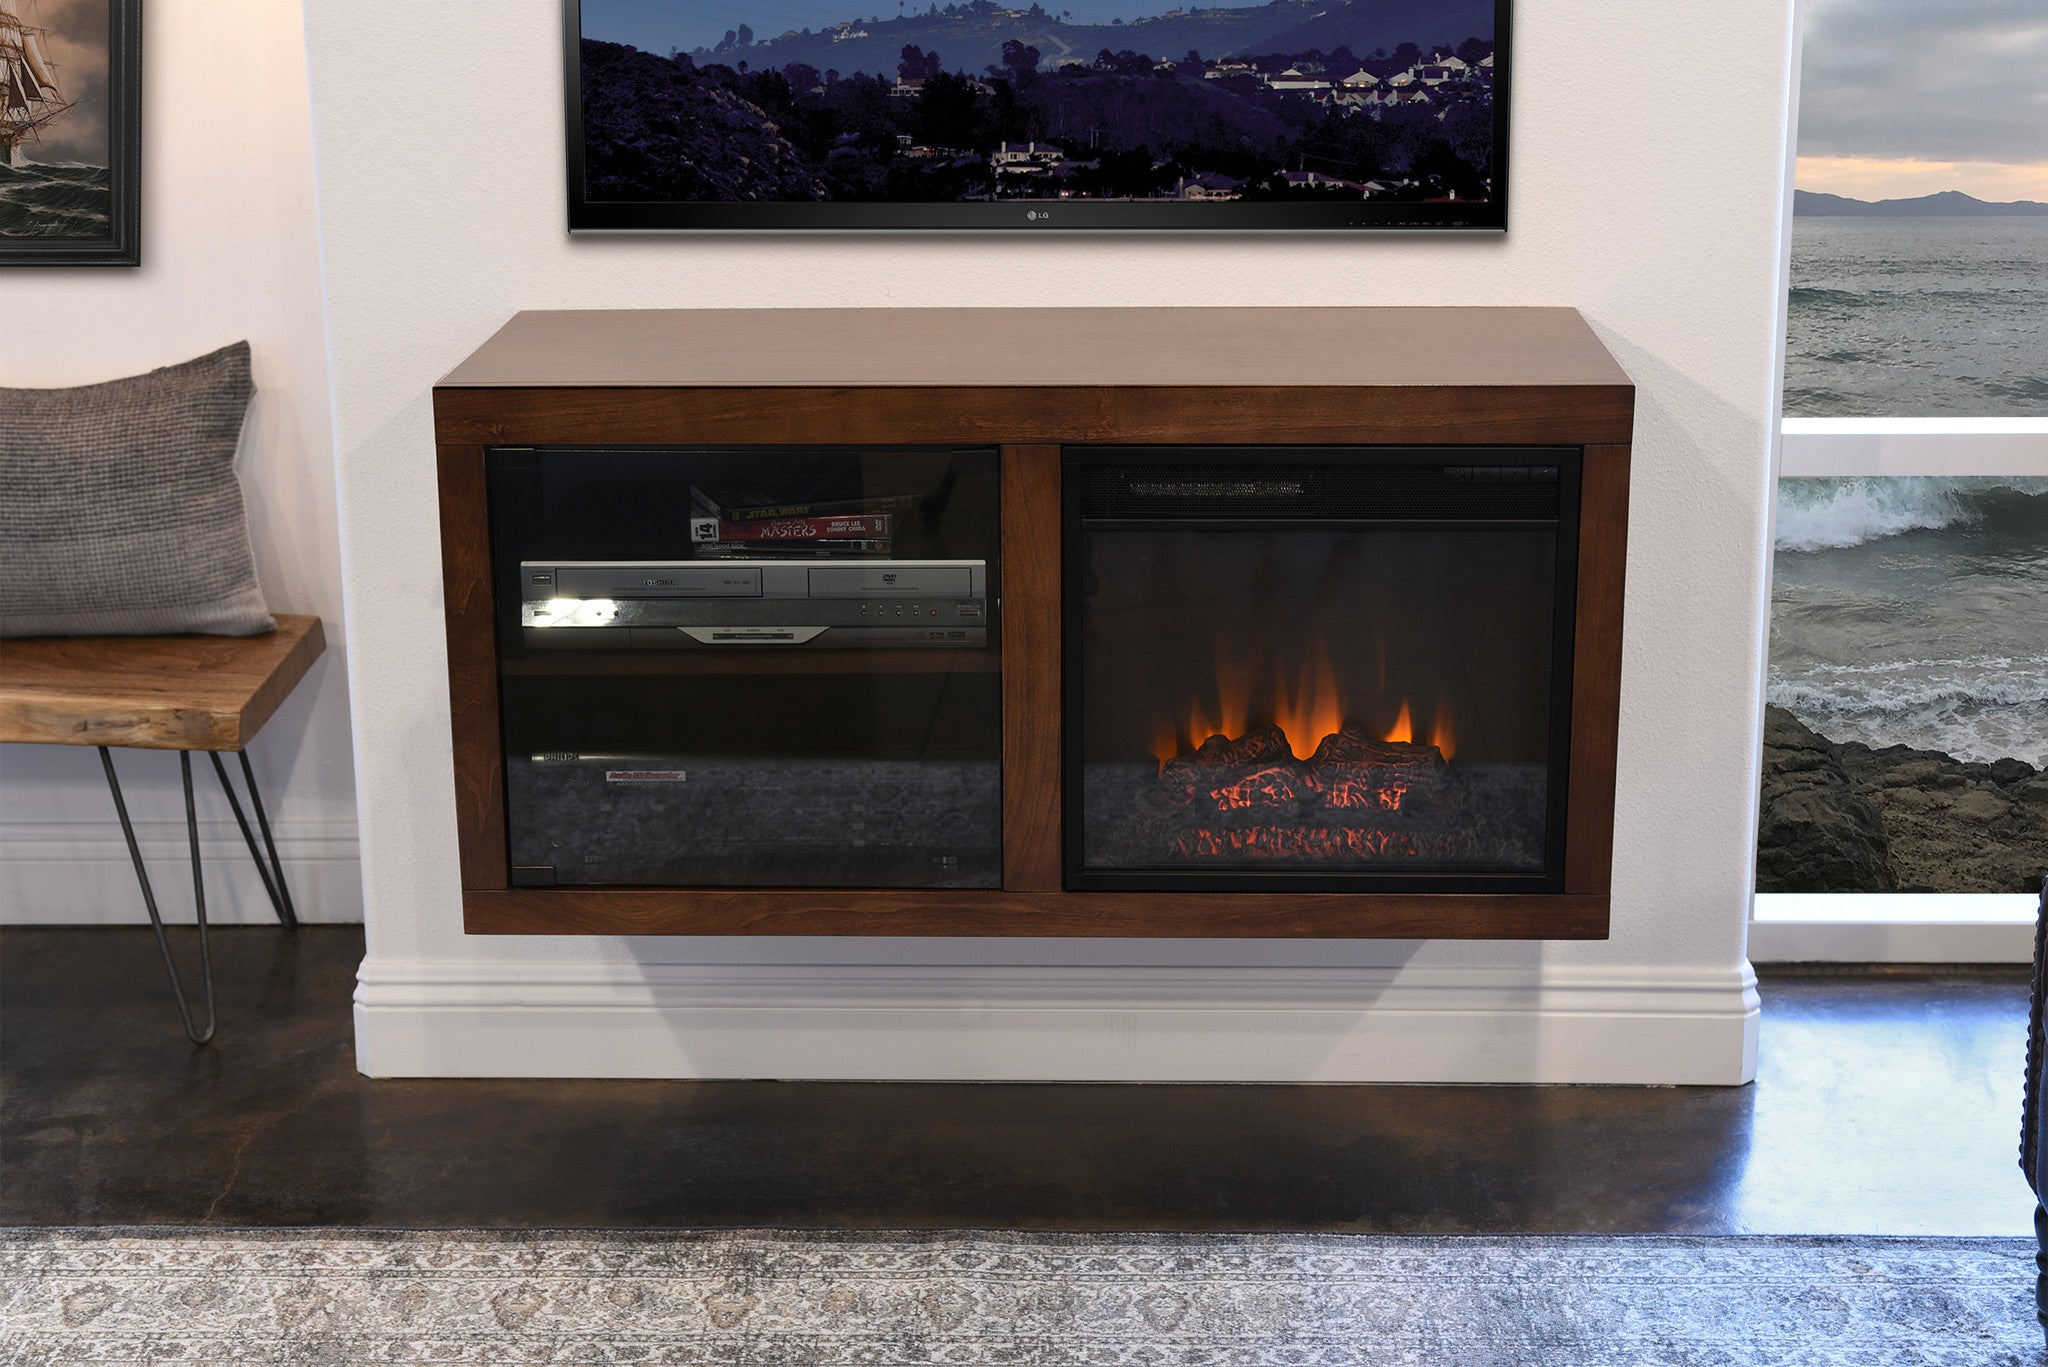 CLEARANCE! SAVE $100 OFF ORIGINAL PRICE OF $799!  HURRY! LIMITED STOCK! View Espresso Version Here Floating Electric Fireplace TV Stand The Eco Geo is a unique eco-friendly modular entertainment console which is handcrafted of solid Poplar and genuine Maple veneers.   This bundle includes our electric fireplace and h